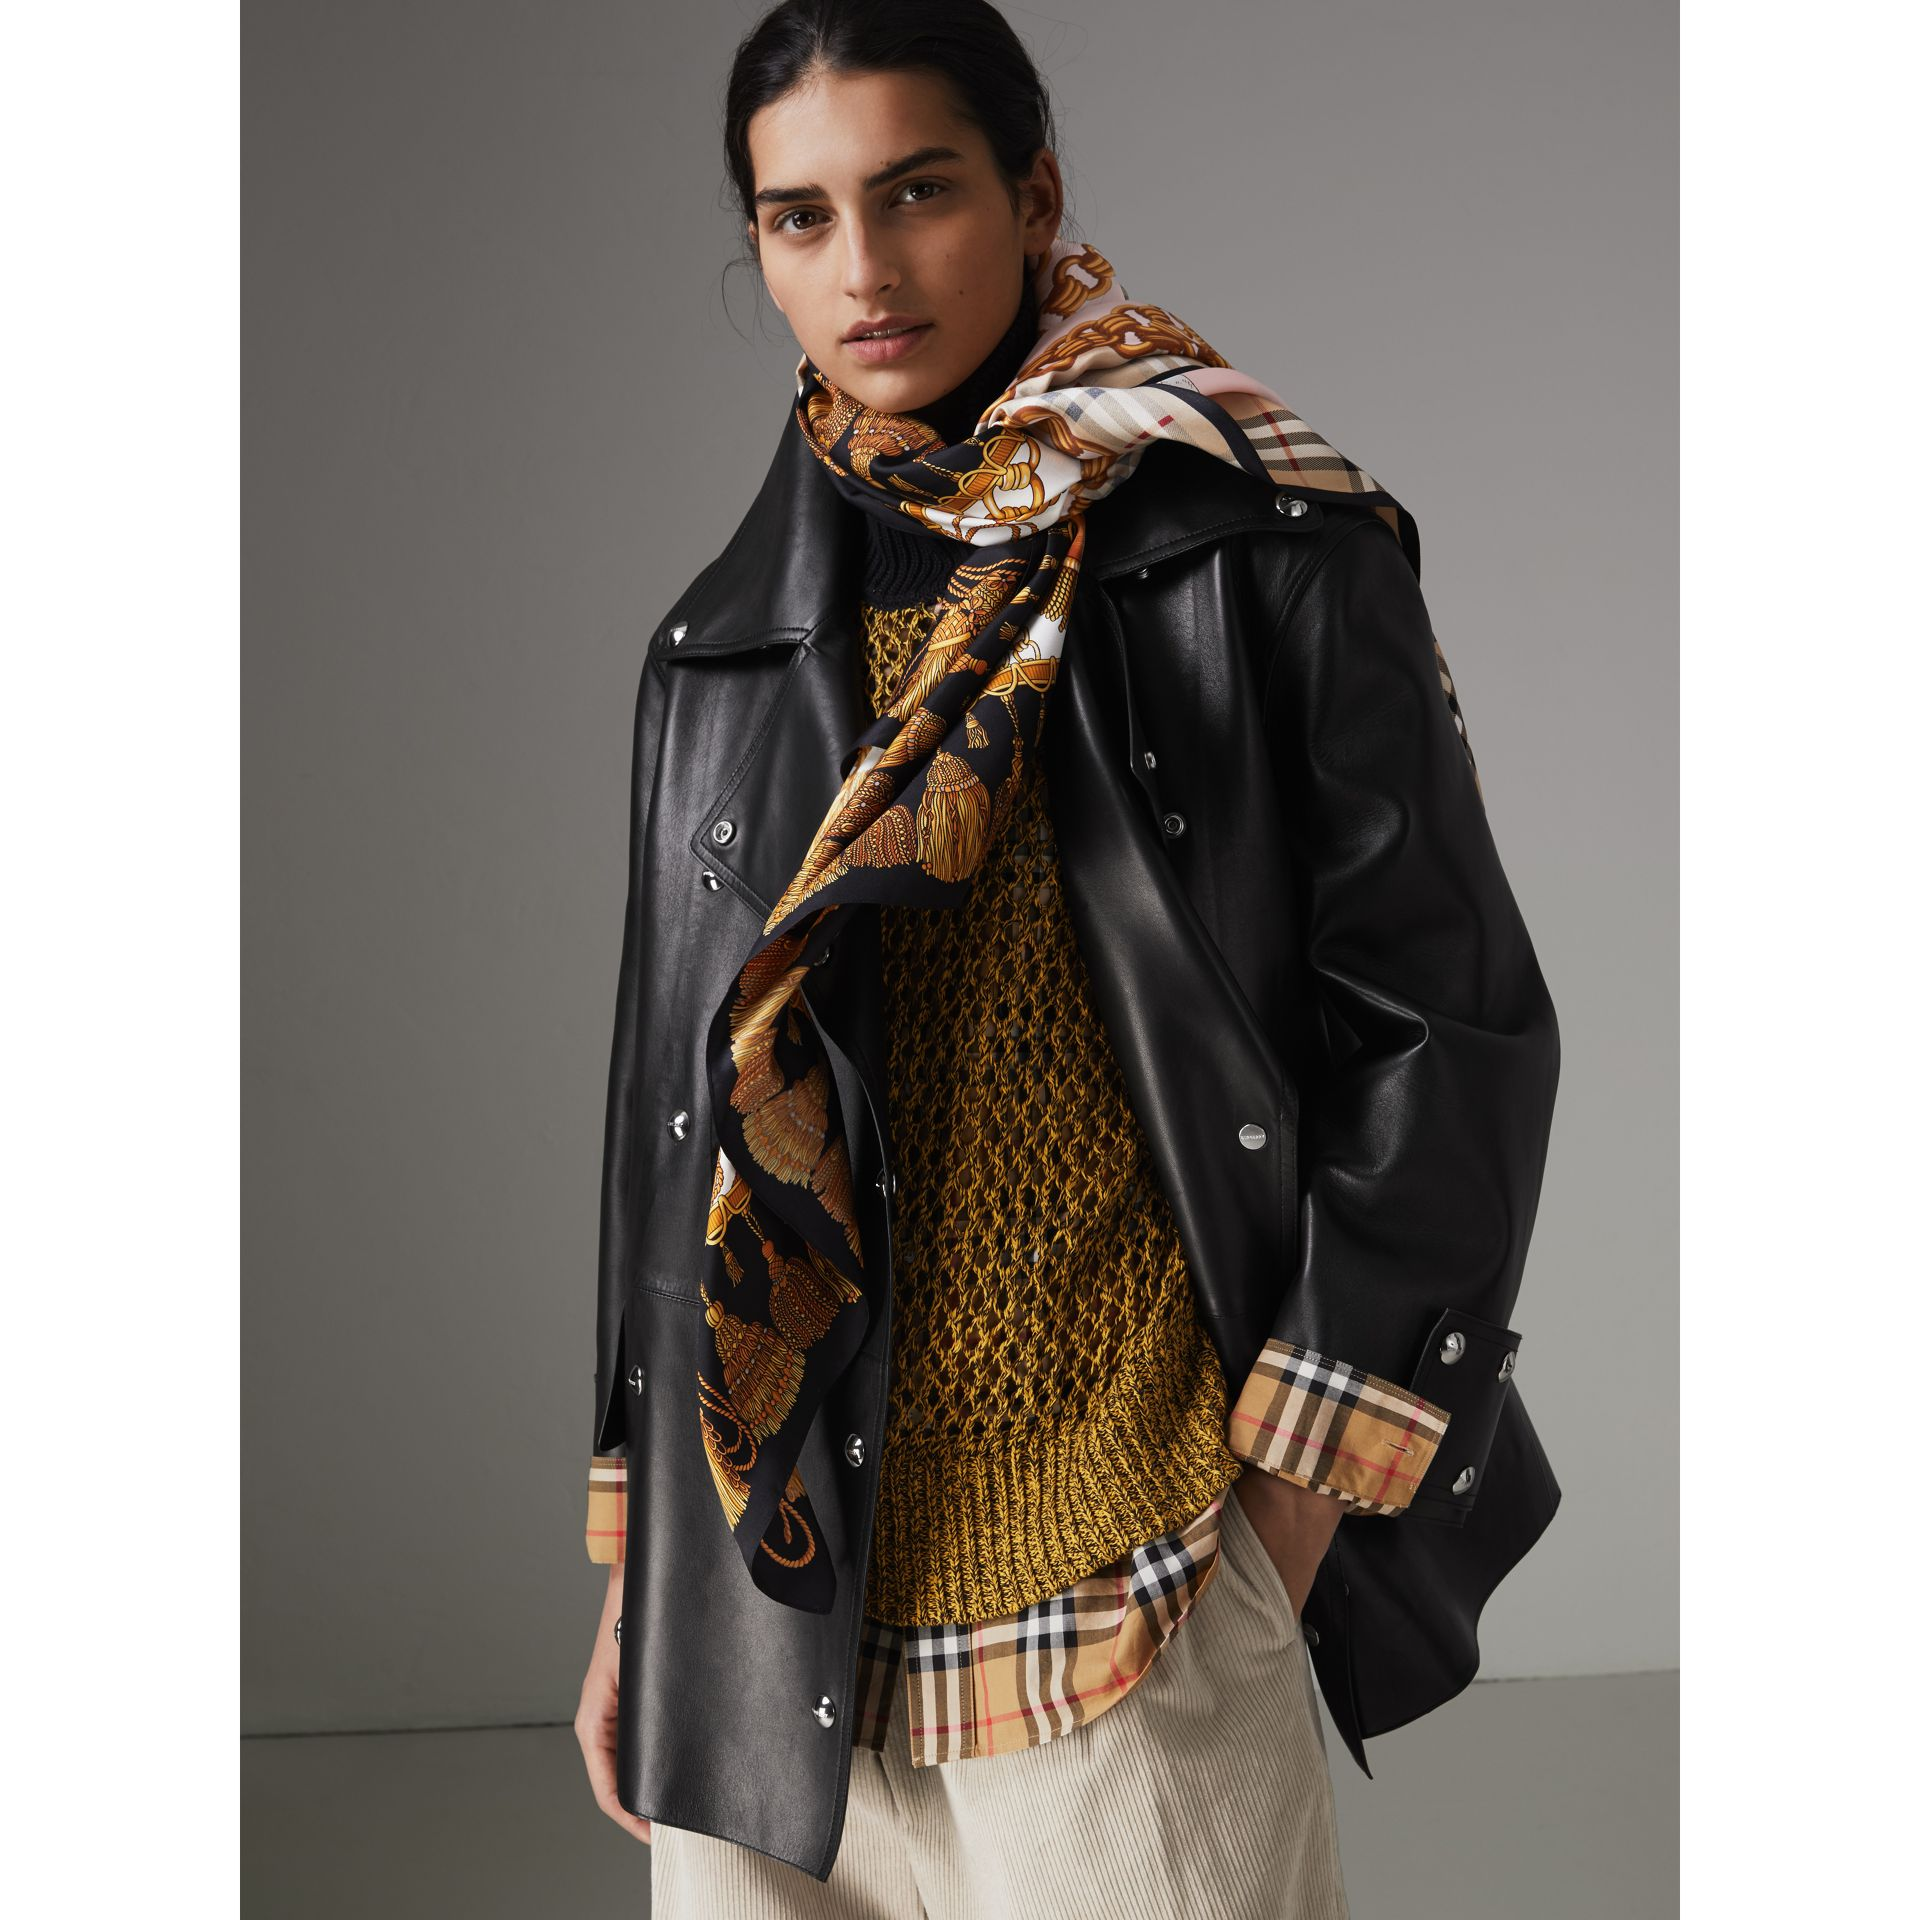 Archive Scarf Print Silk Scarf in Gold | Burberry United States - gallery image 6